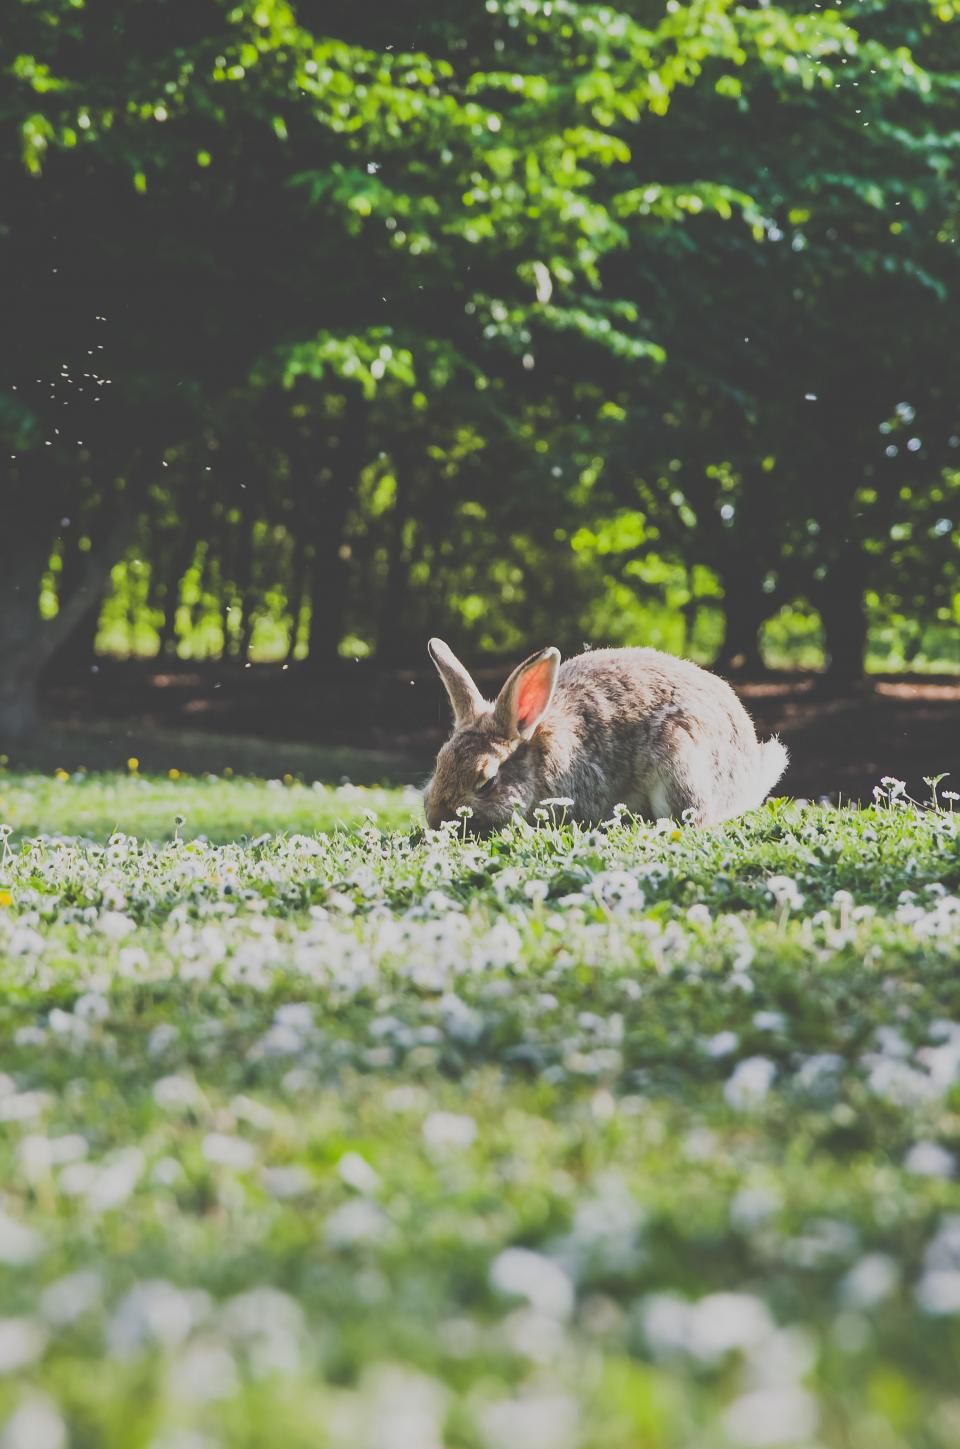 rabbit pet animal green grass flowers blur bokeh outside trees plants nature